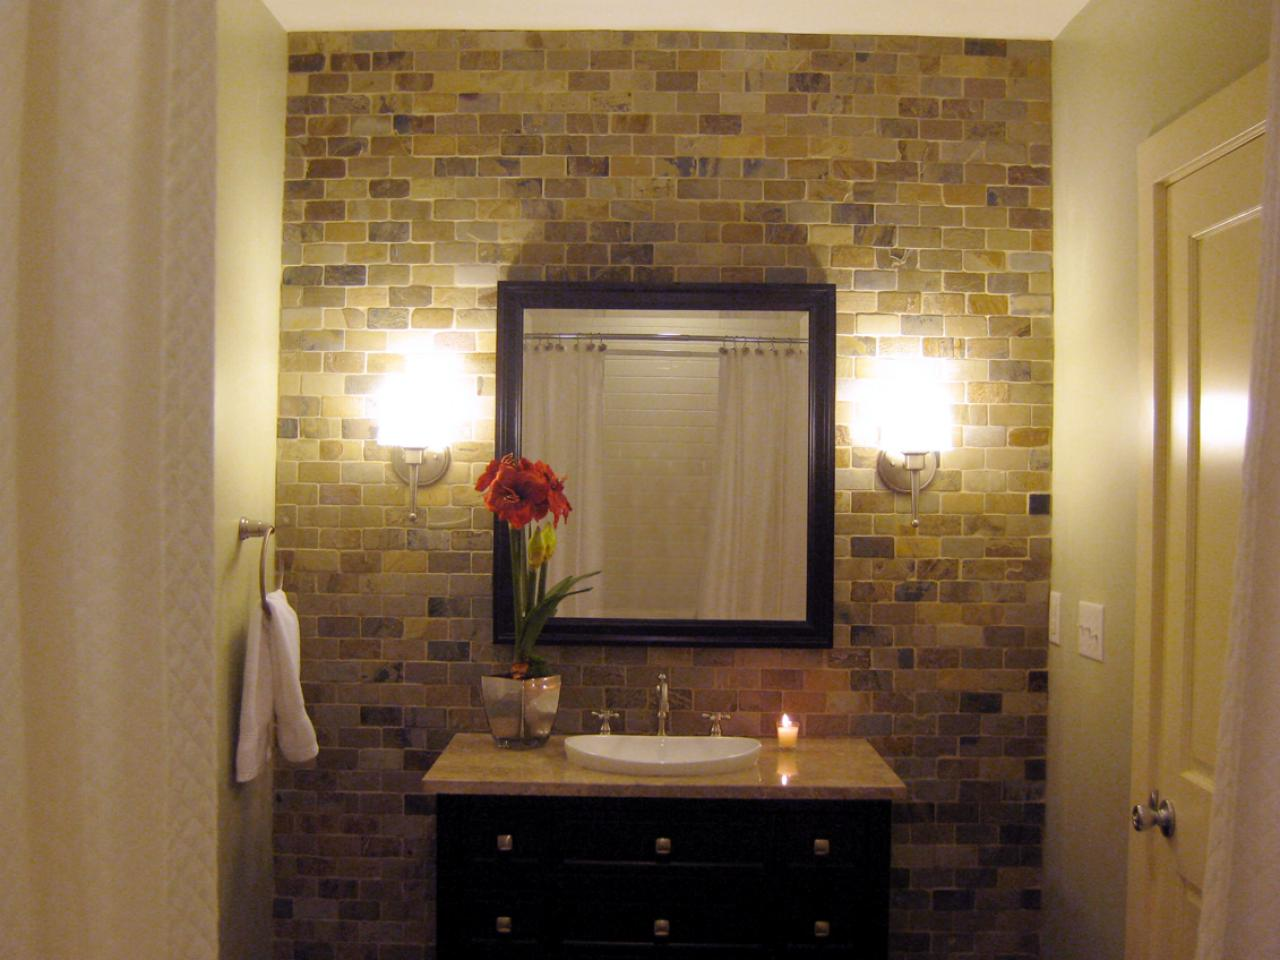 30 magnificent ideas and pictures of 1950s bathroom tiles designs - Small Bathroom Design 2